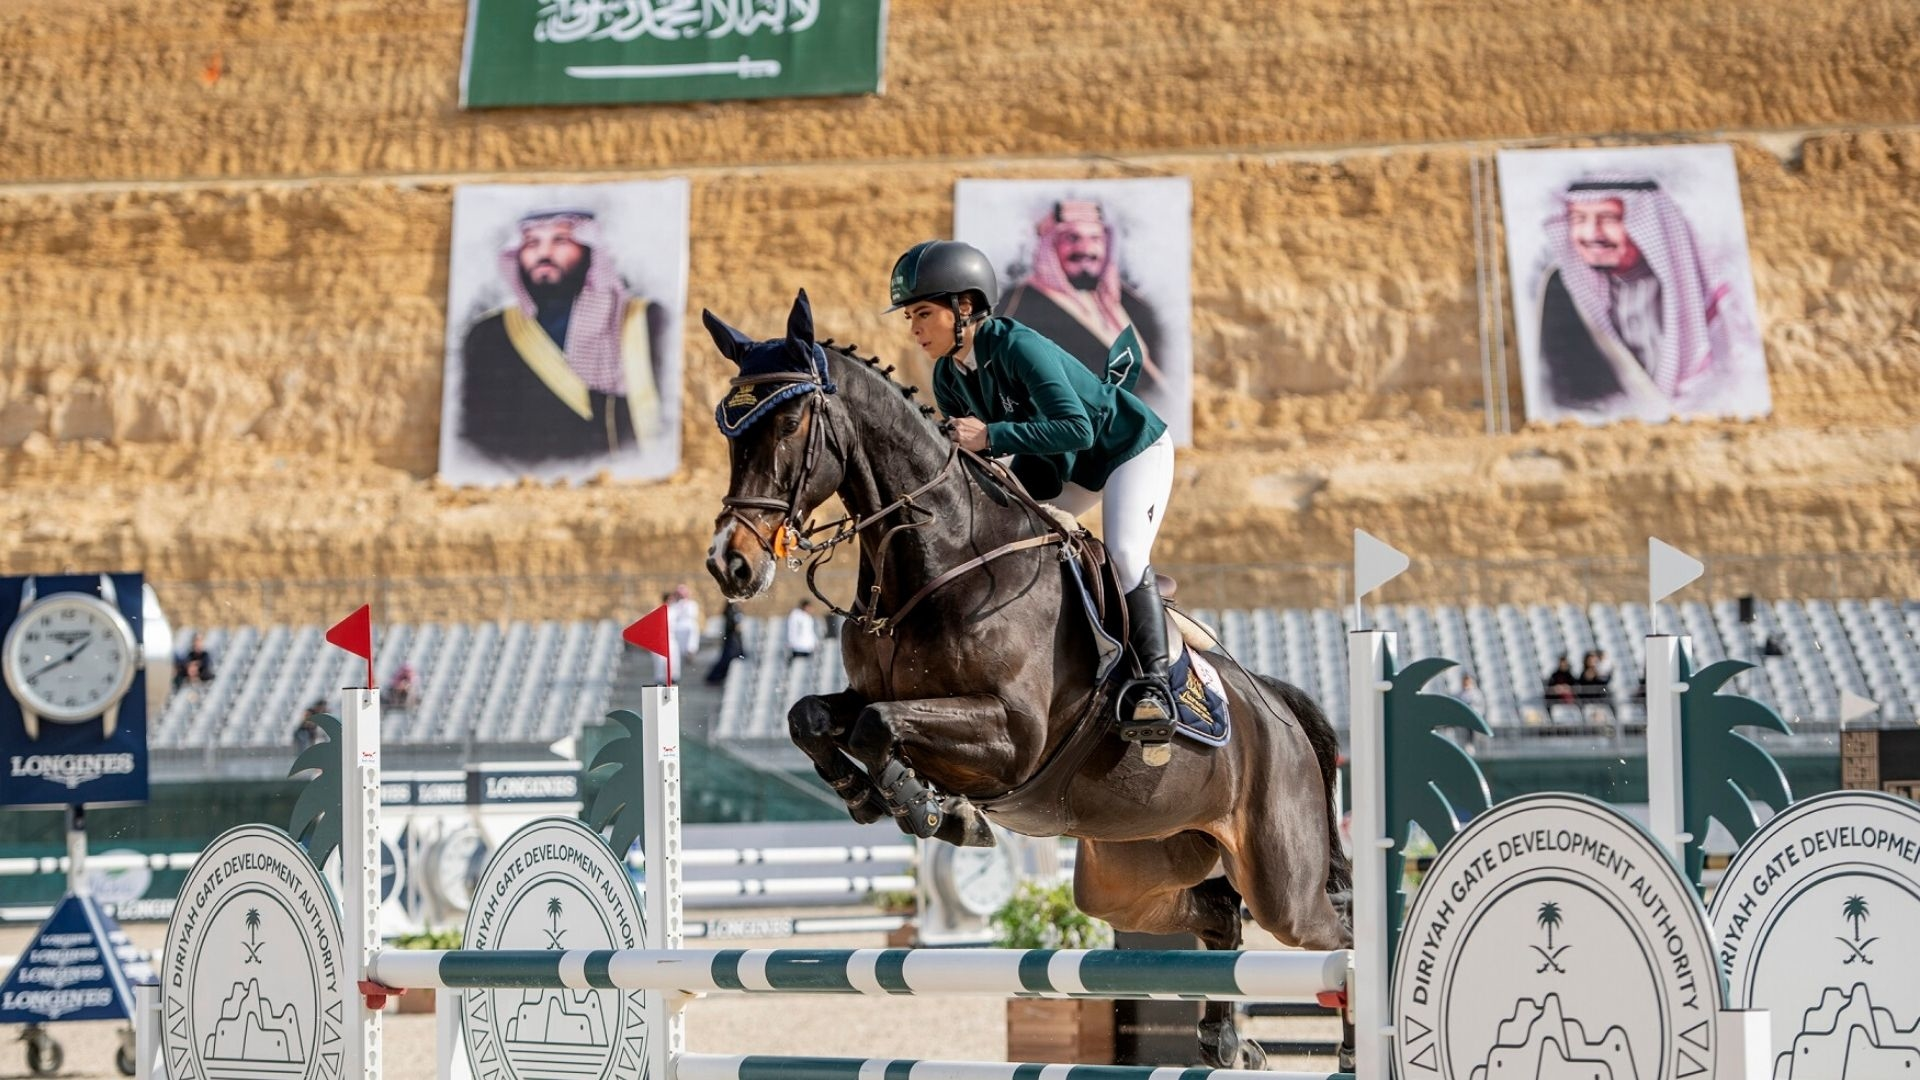 Saudi Female Horse Riders Make History Competing Alongside Men In Diriyah Equestrian Festival